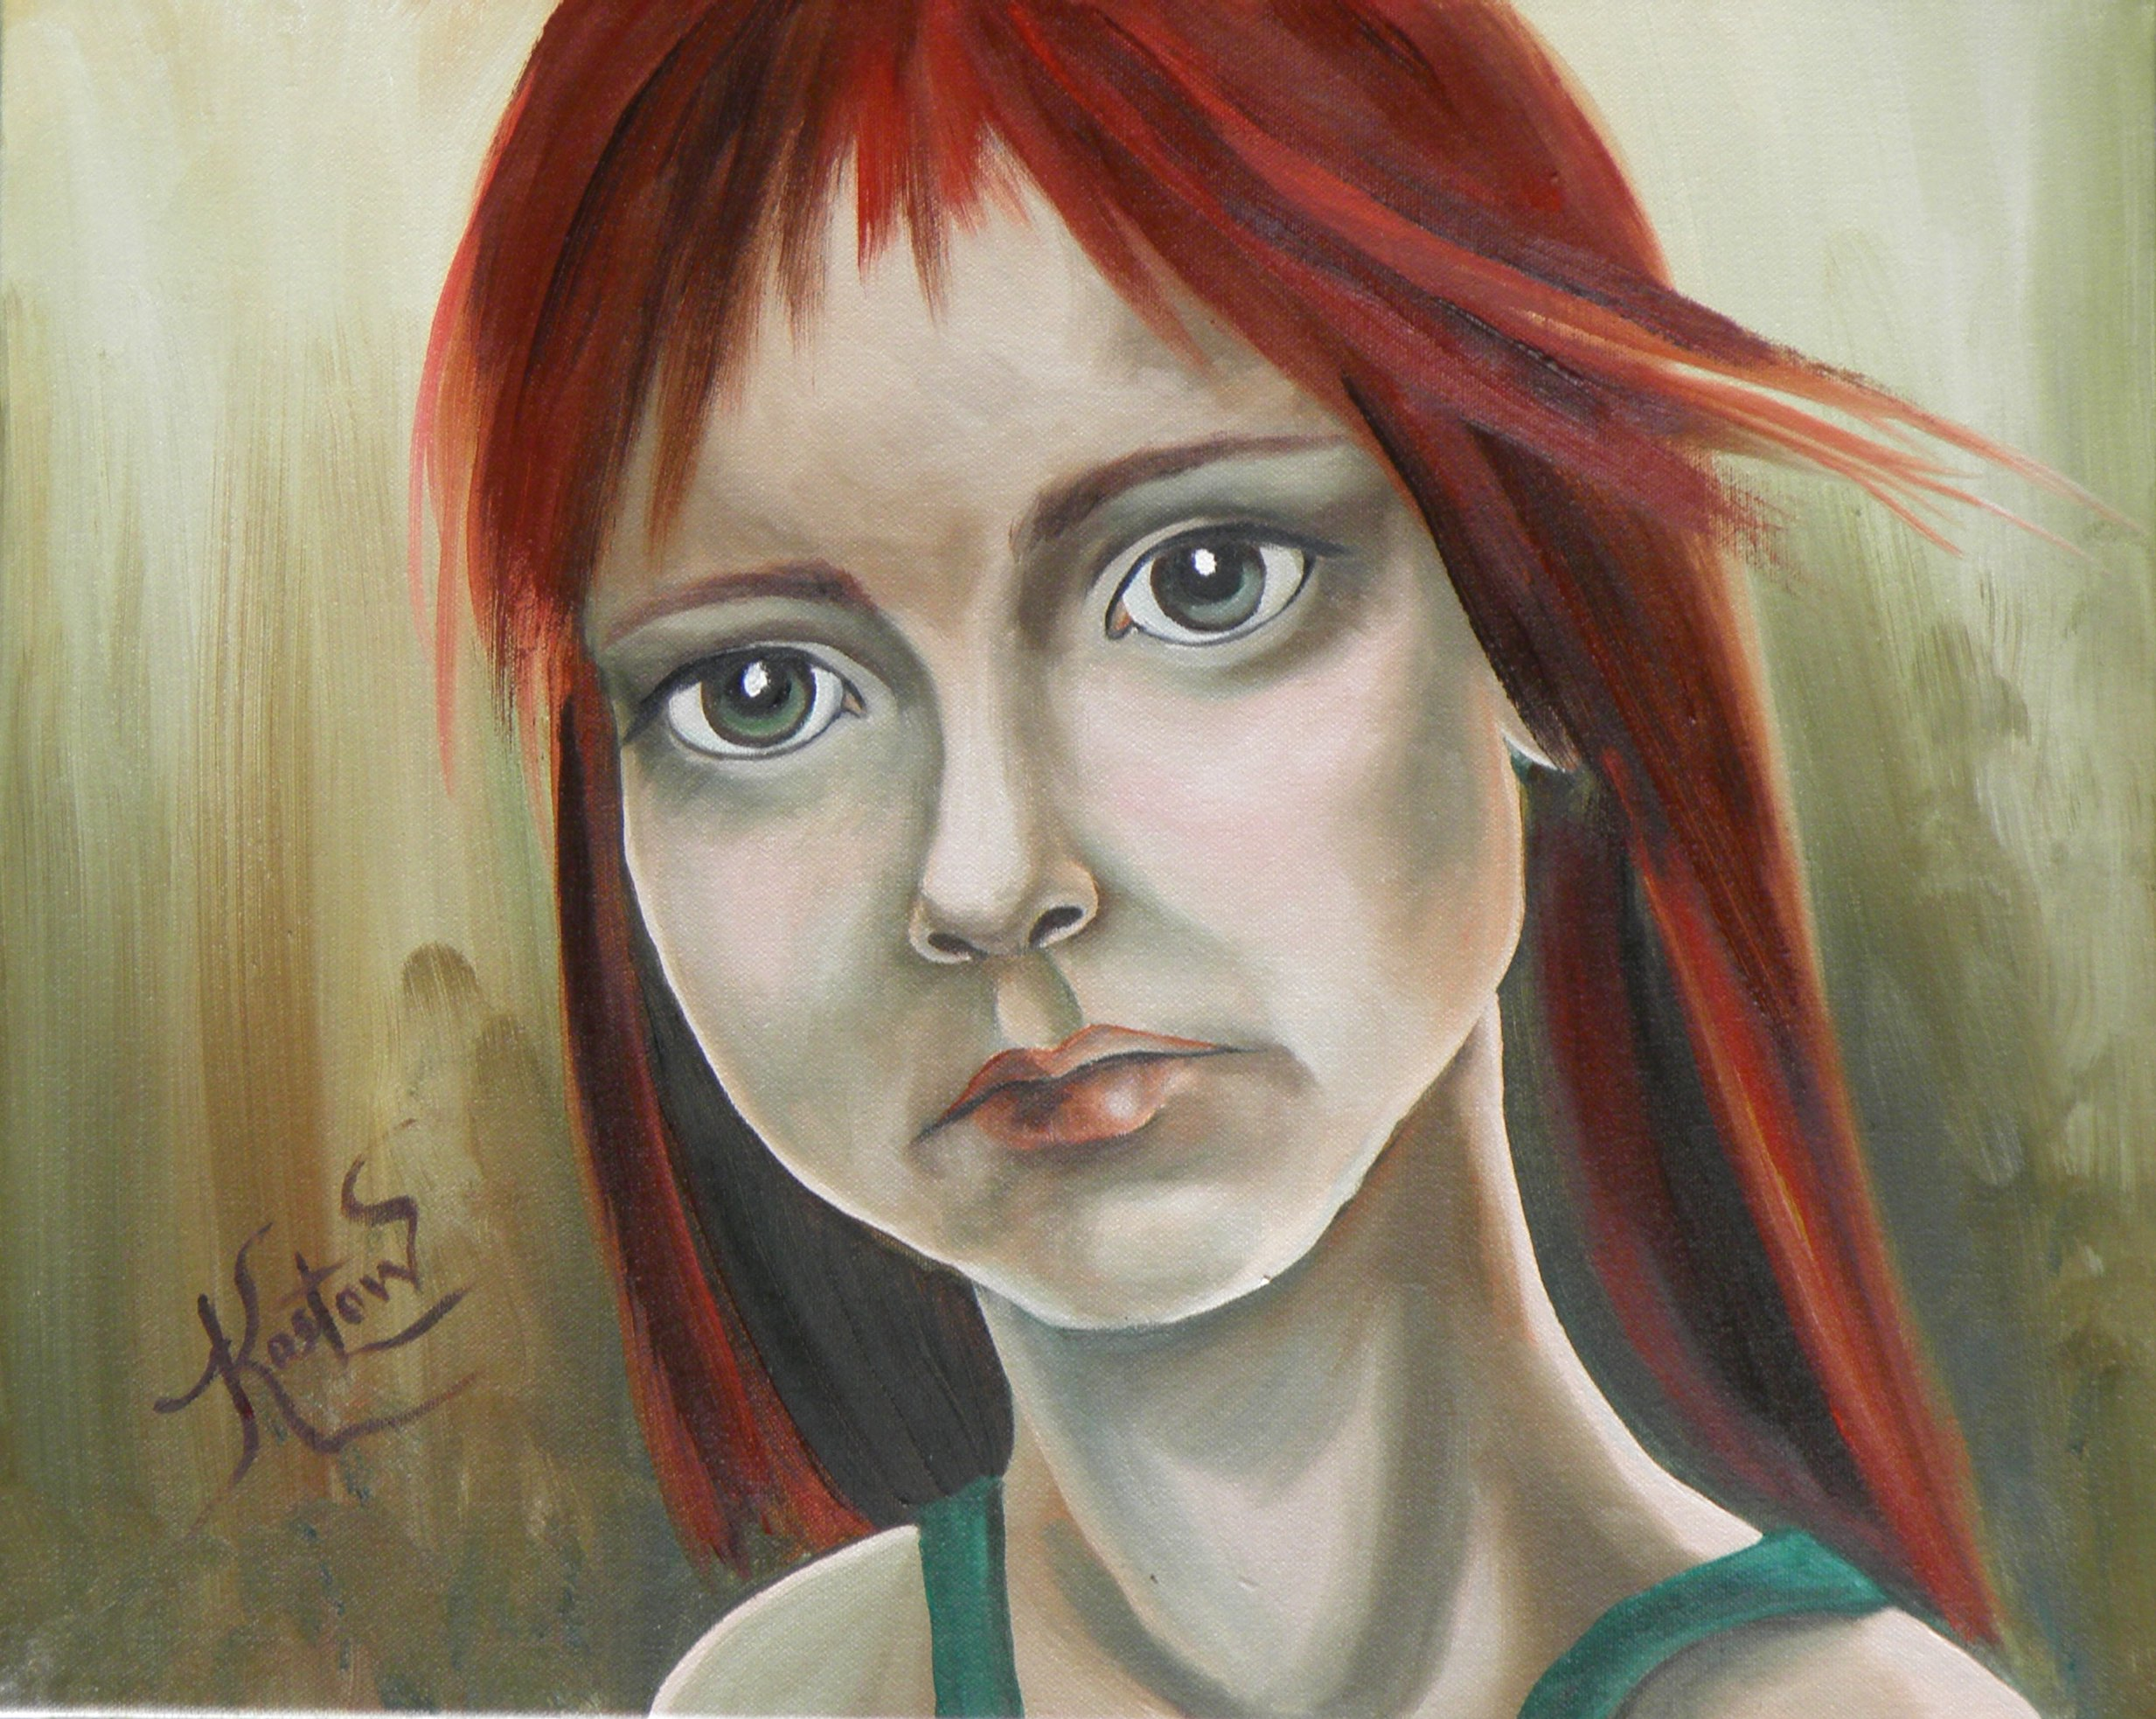 A portrait of a red-headed child depicting an accusation